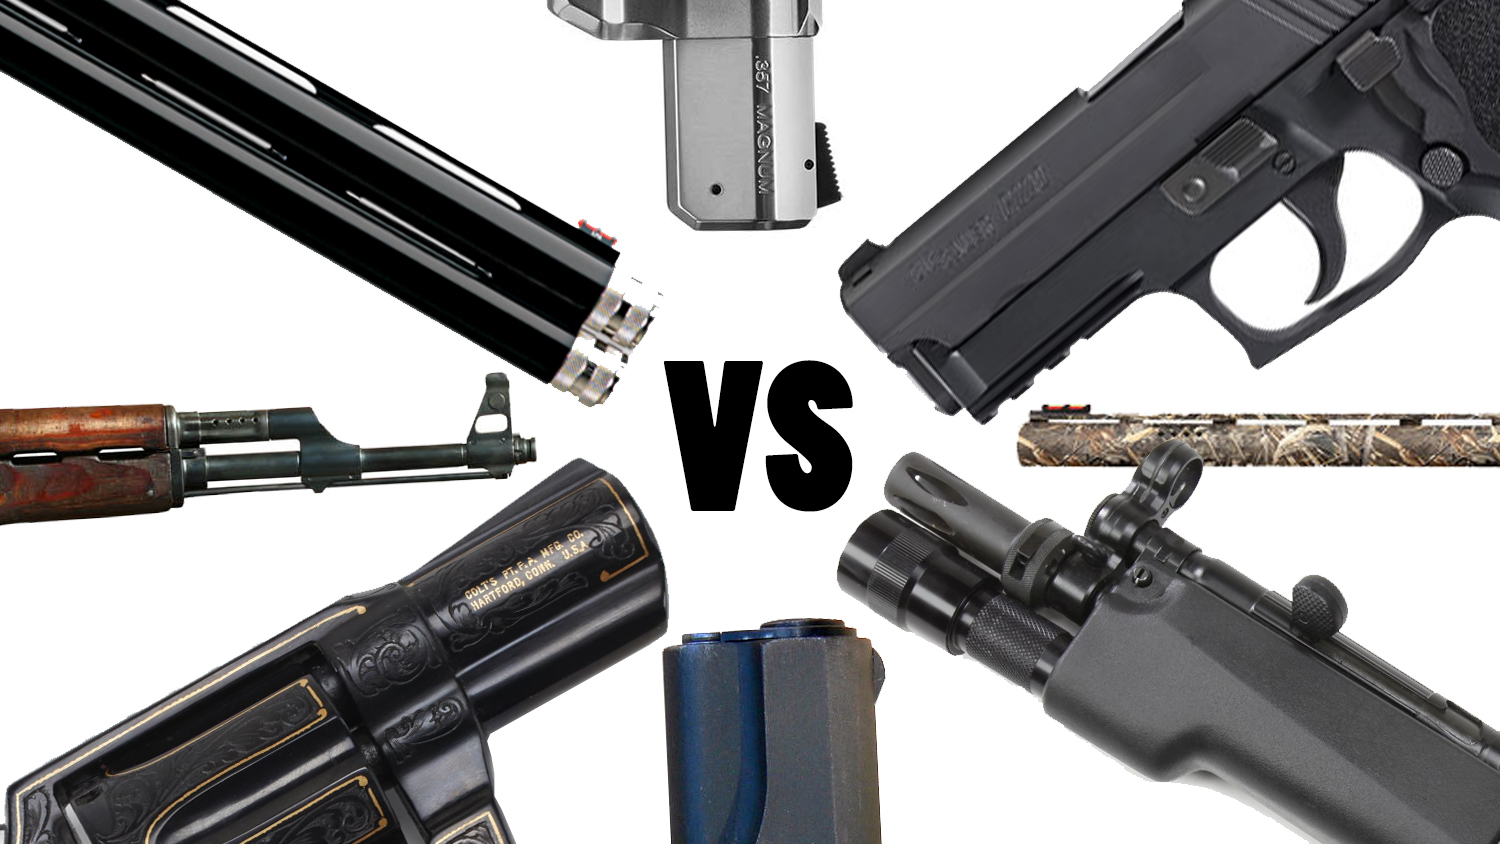 The Official Gun Bracket: And the Winner is...